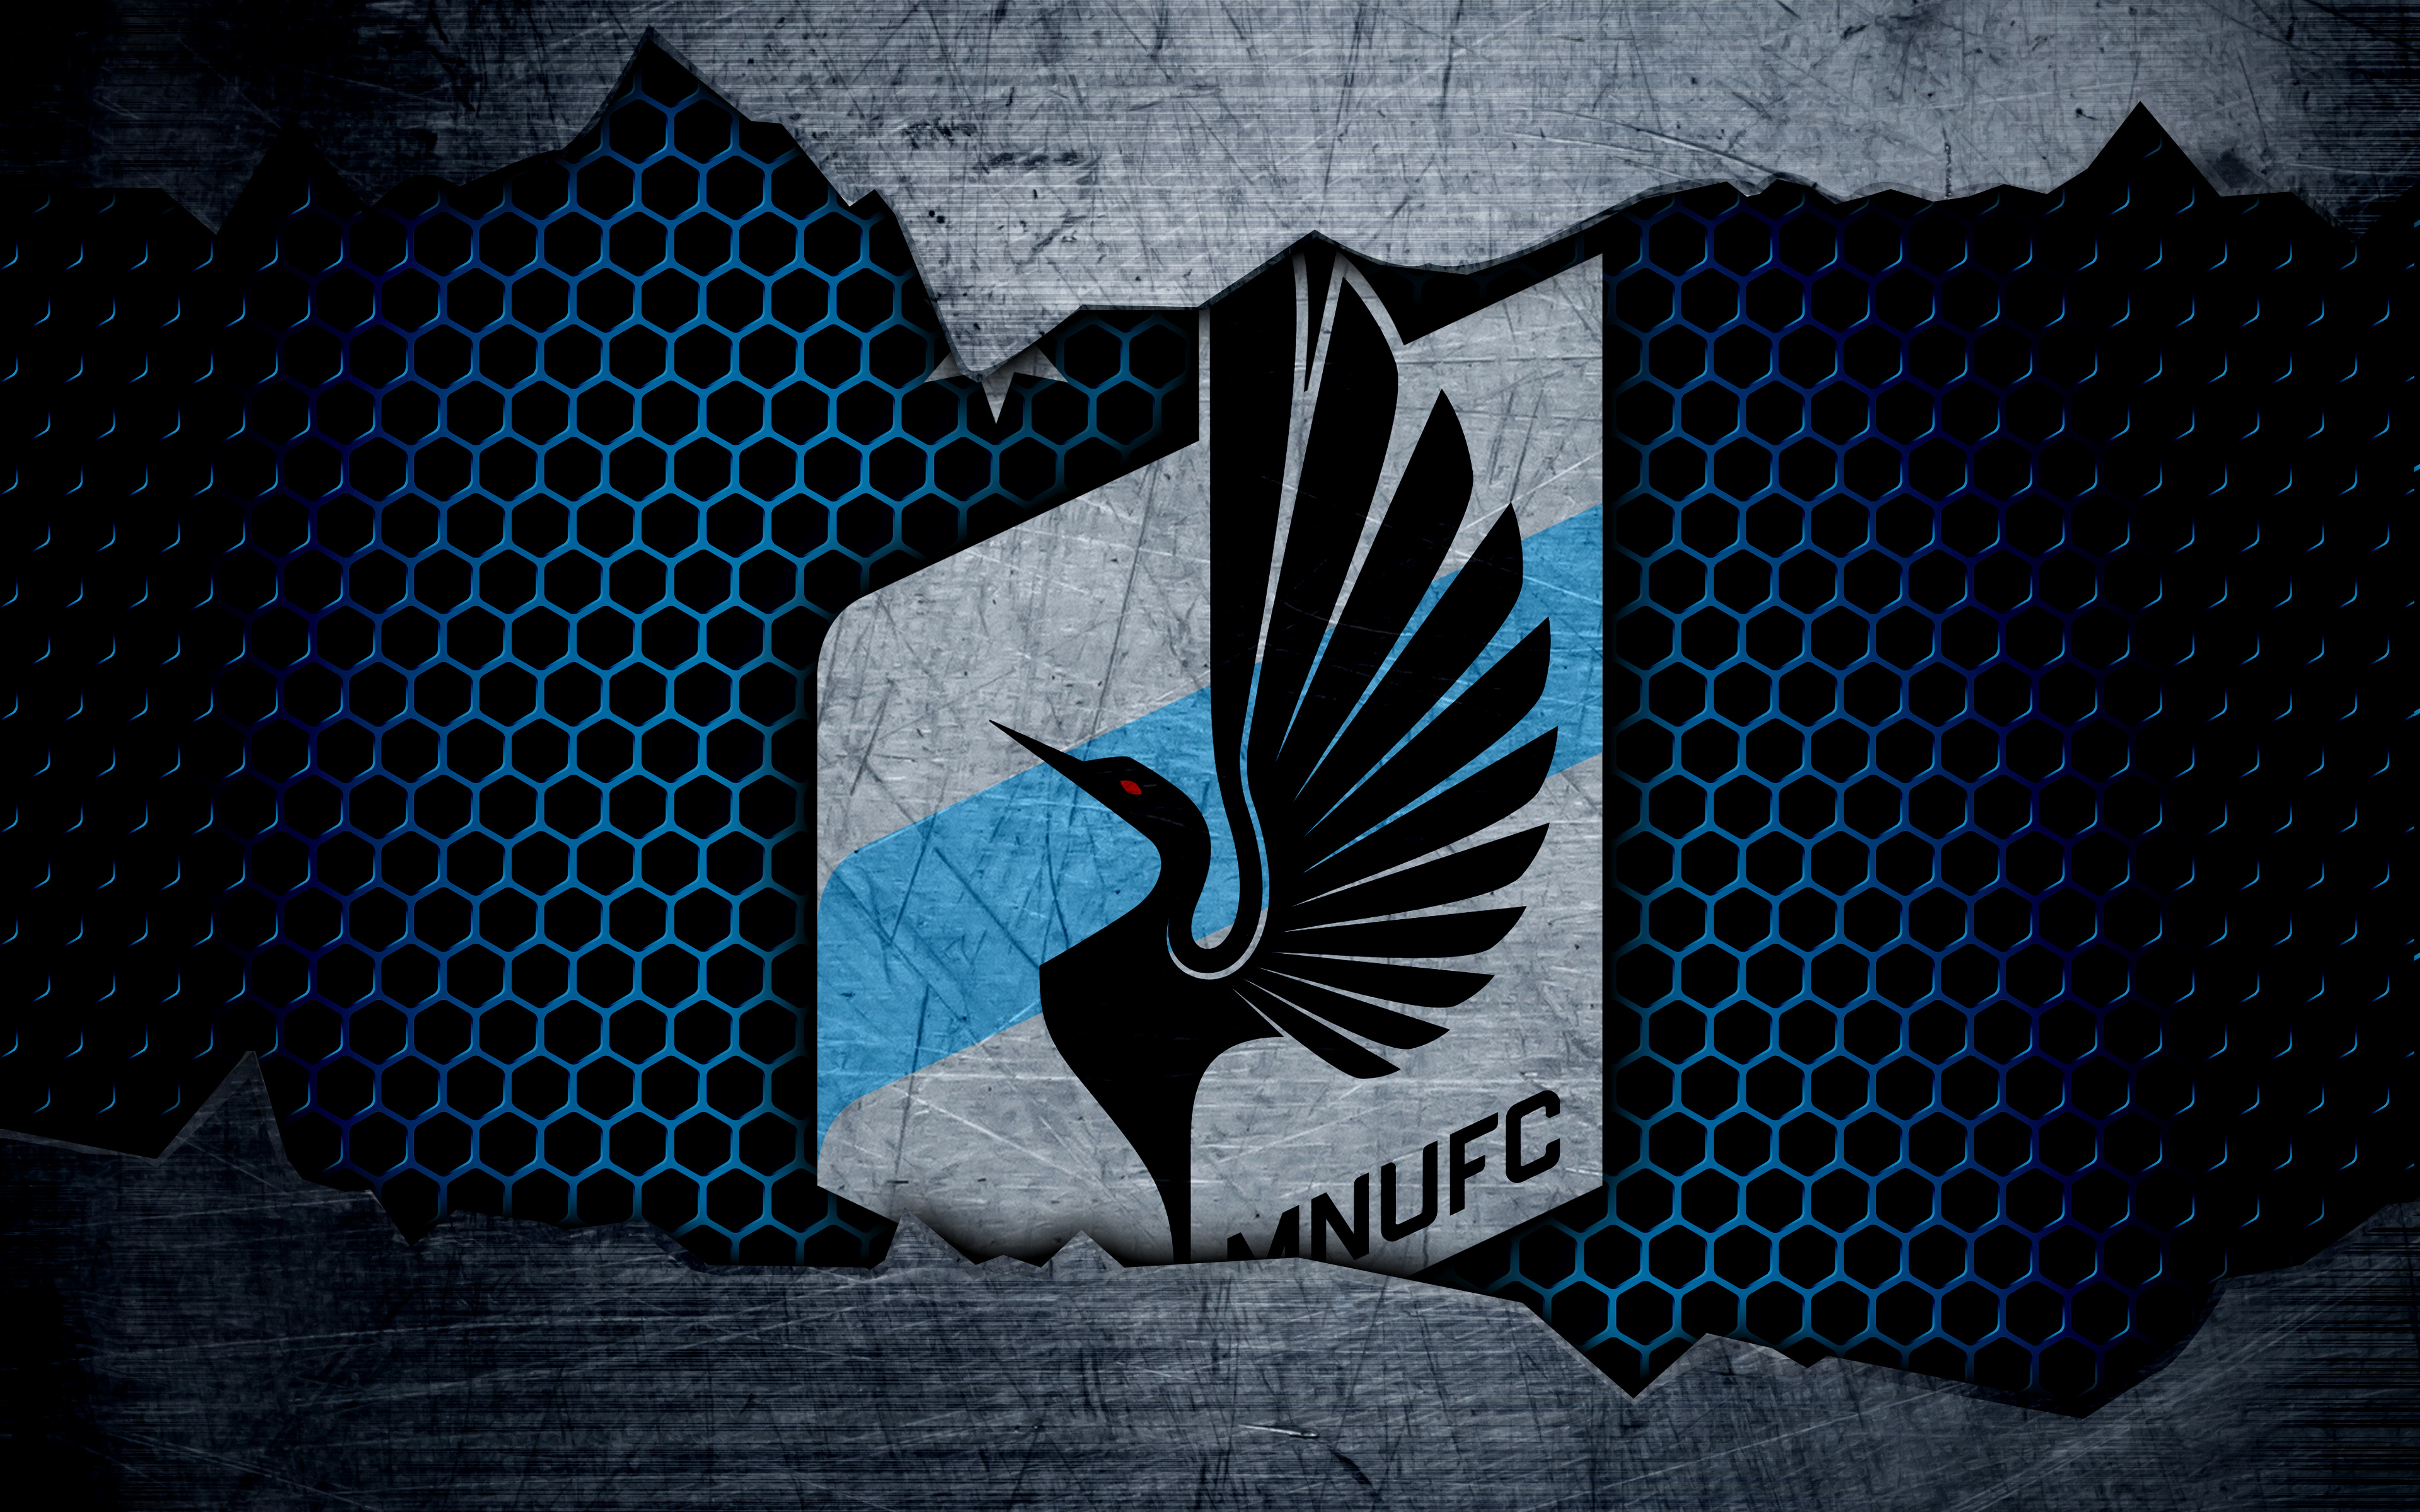 Minnesota United FC 4k Ultra HD Wallpaper Background Image 3840x2400